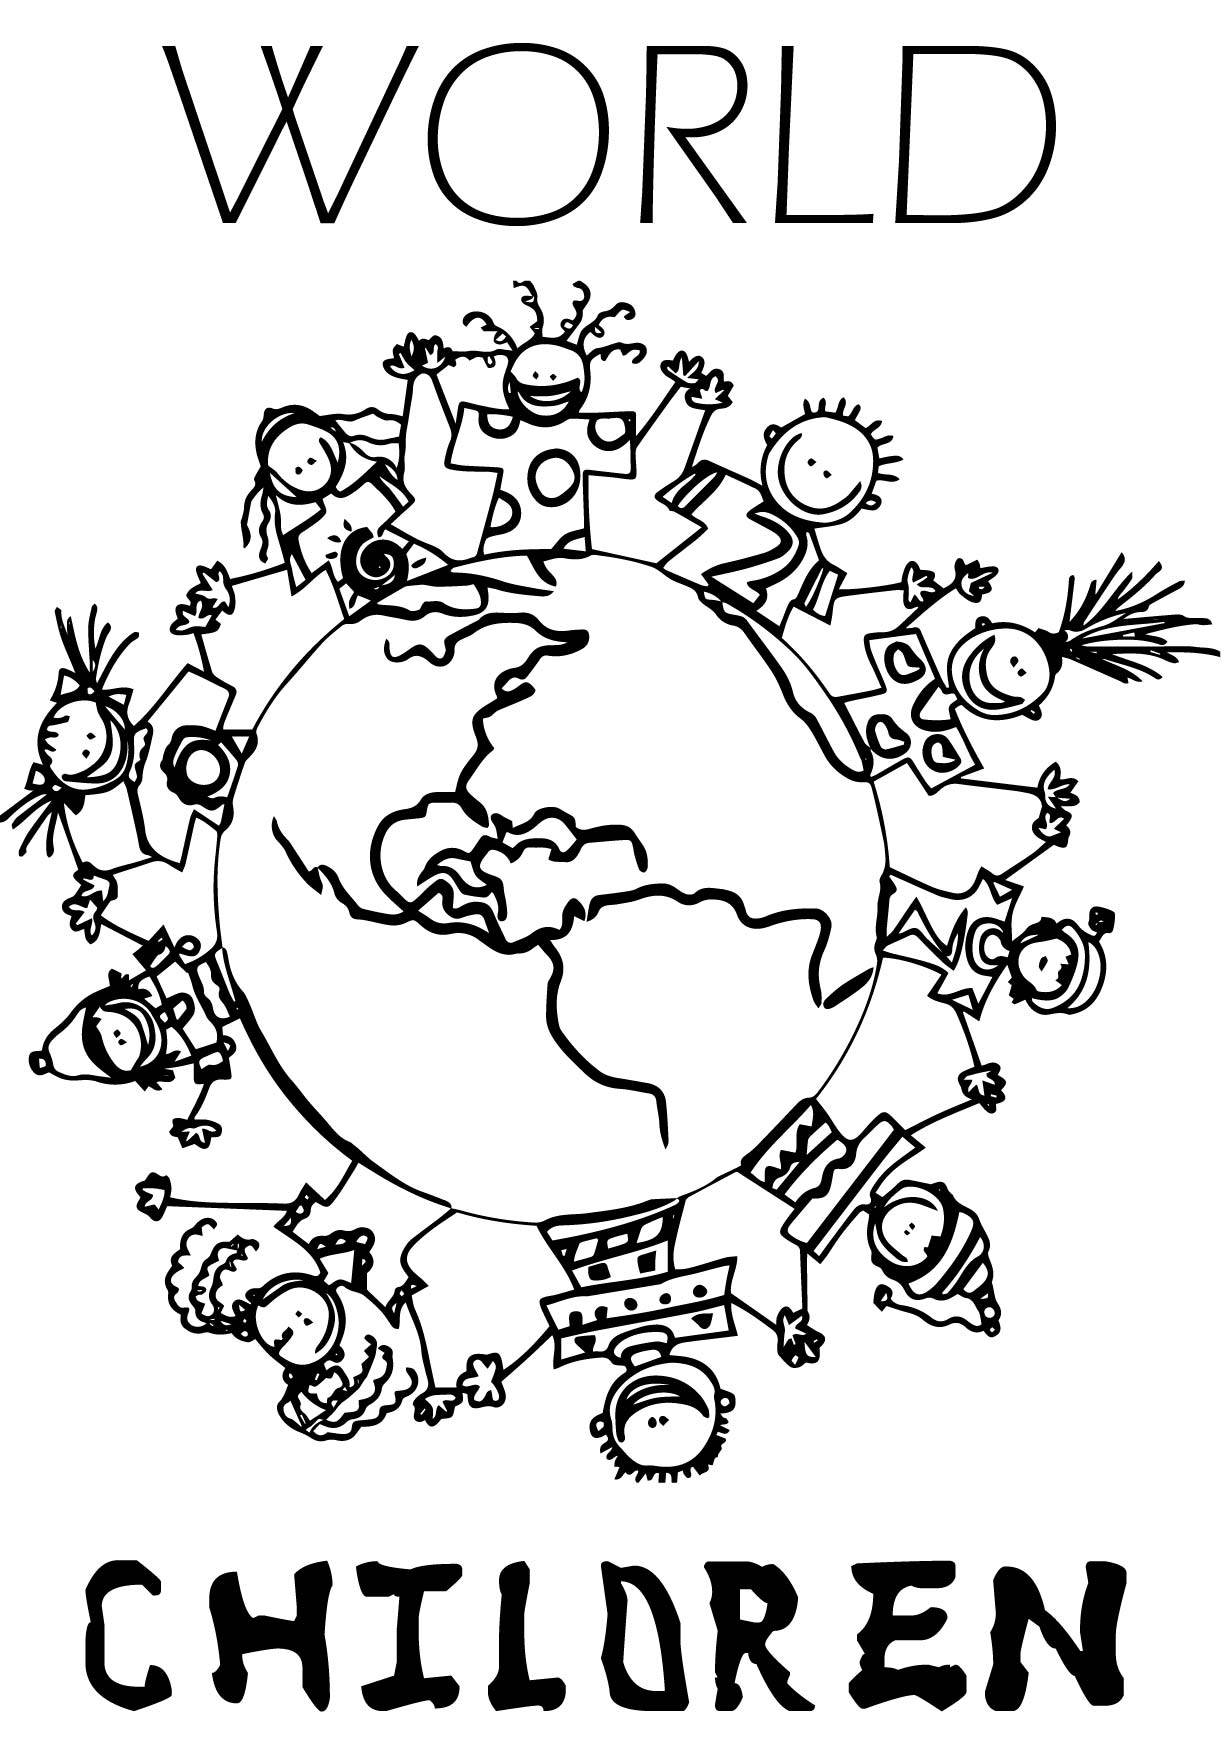 World Childrens Coloring Page Wecoloringpage